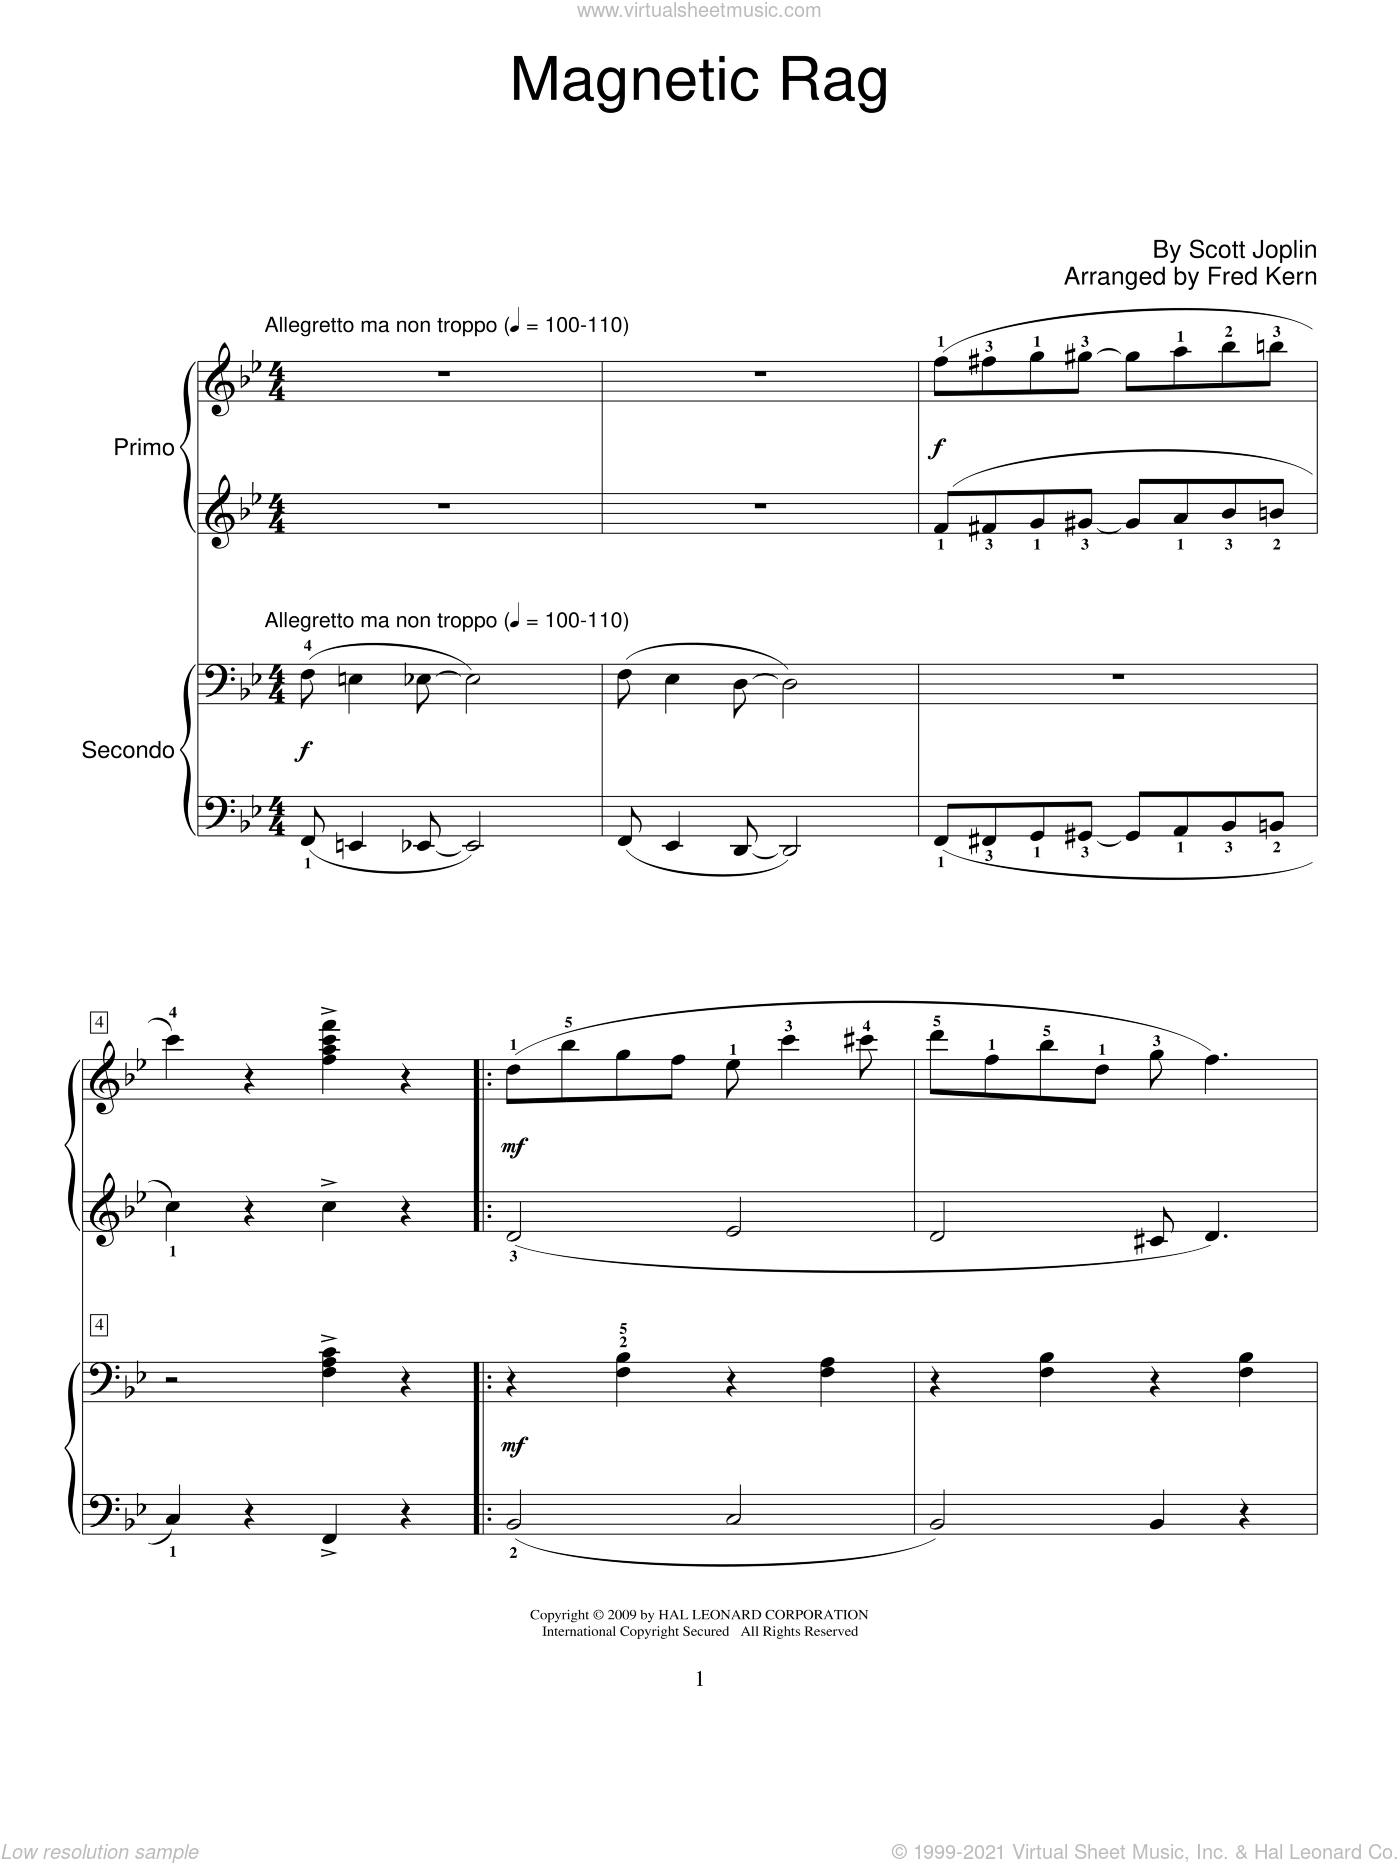 Magnetic Rag sheet music for piano four hands by Scott Joplin, Fred Kern and Miscellaneous, intermediate skill level